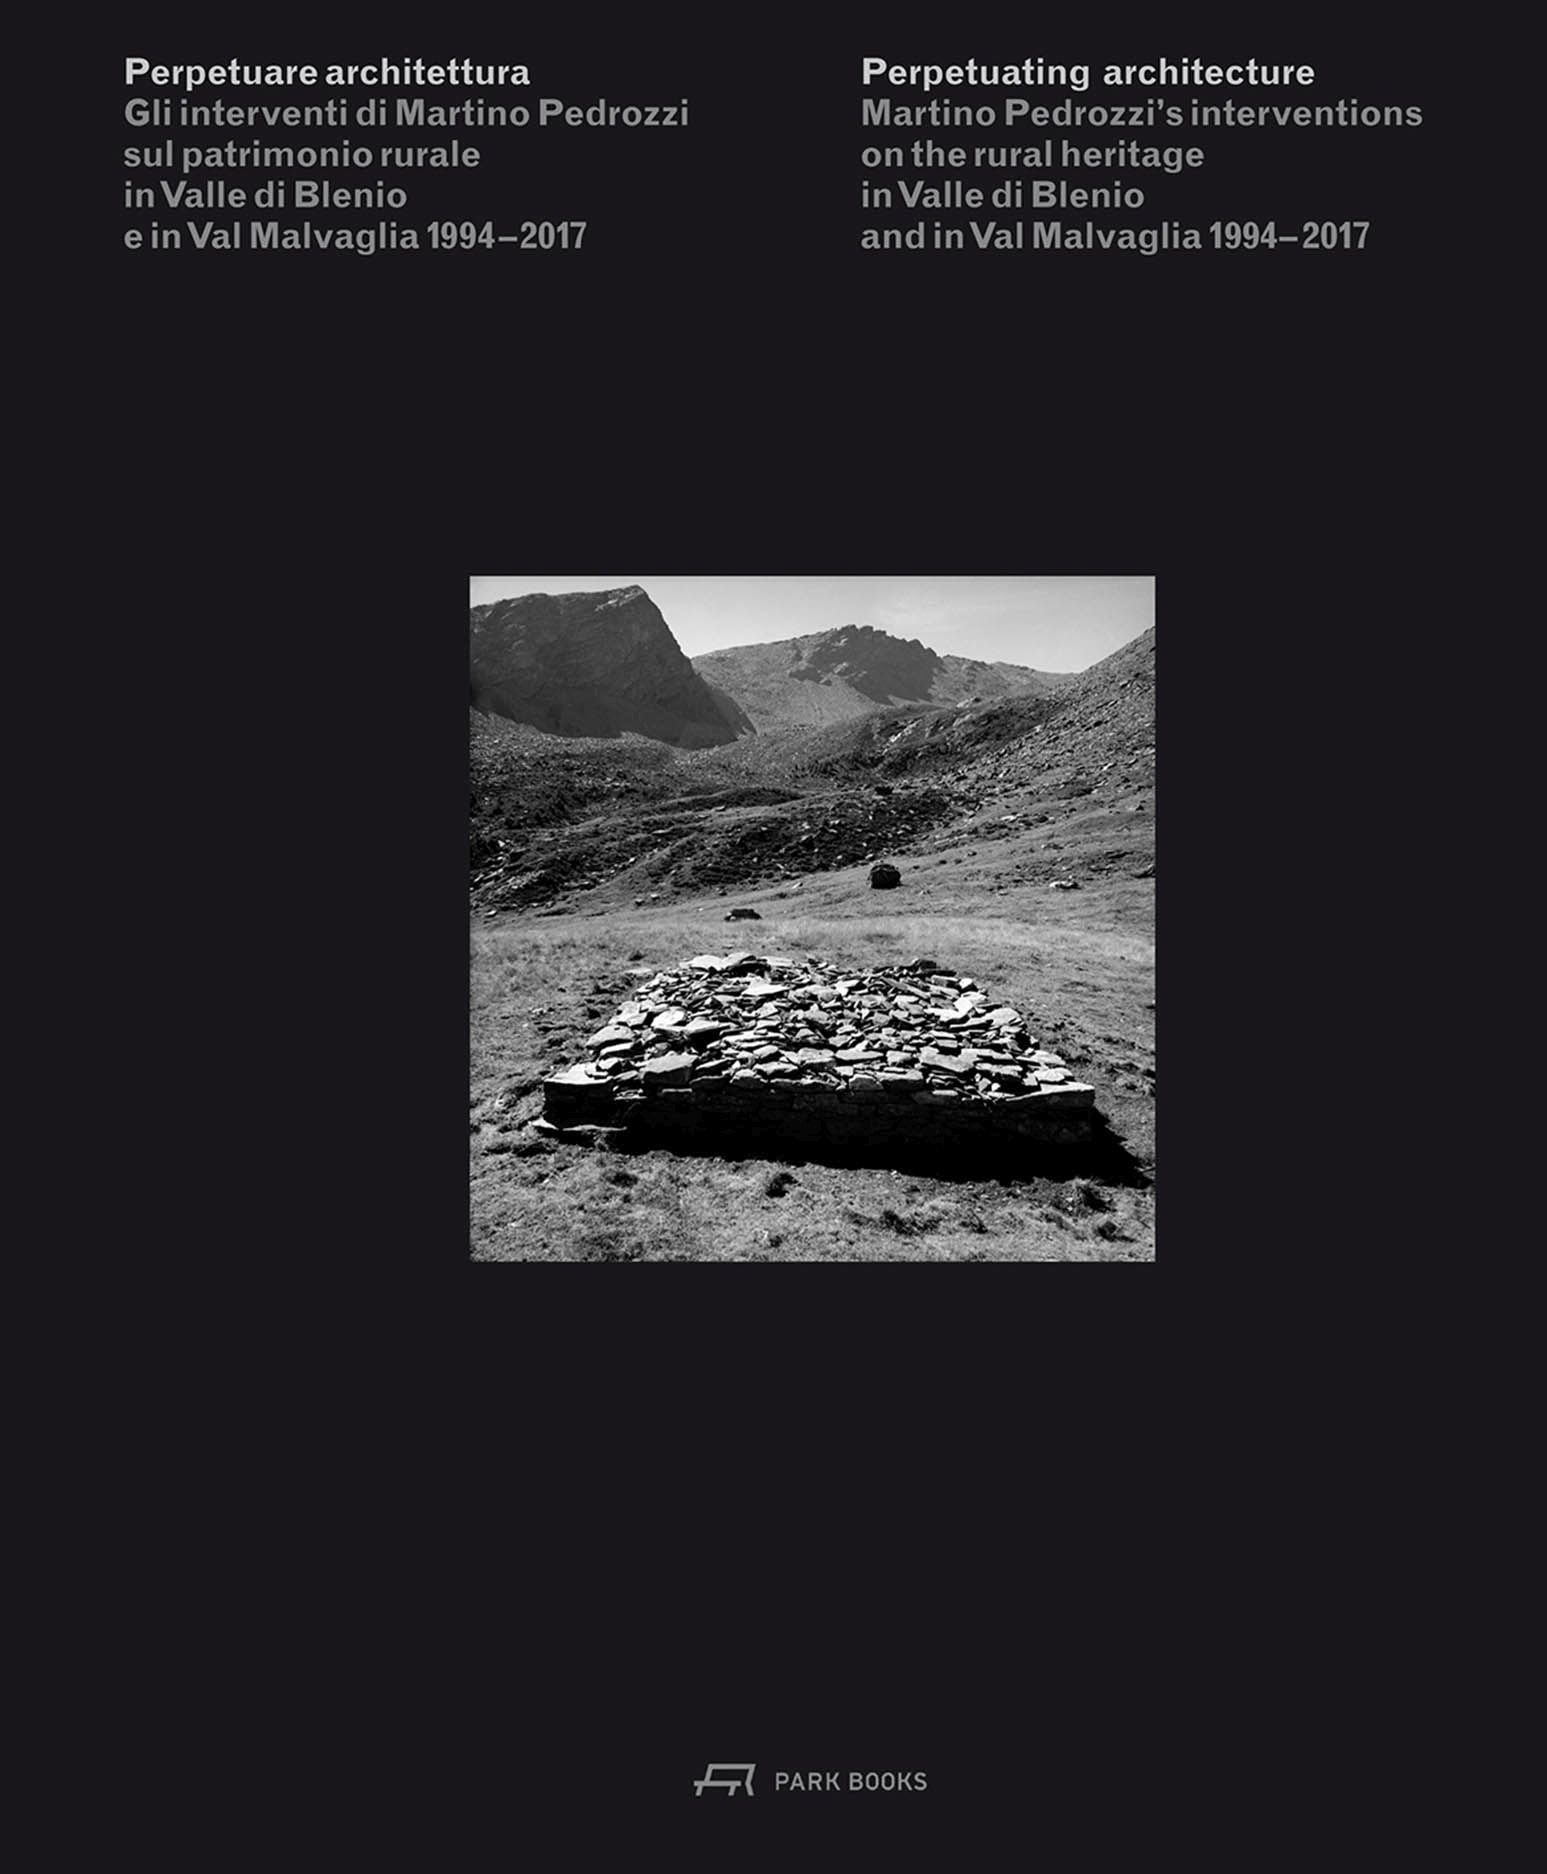 Perpetuating Architecture: Martino Pedrozzi's Interventions on the Rural Heritage in Valle di Blenio and in Val Malvaglia 1994– 2017